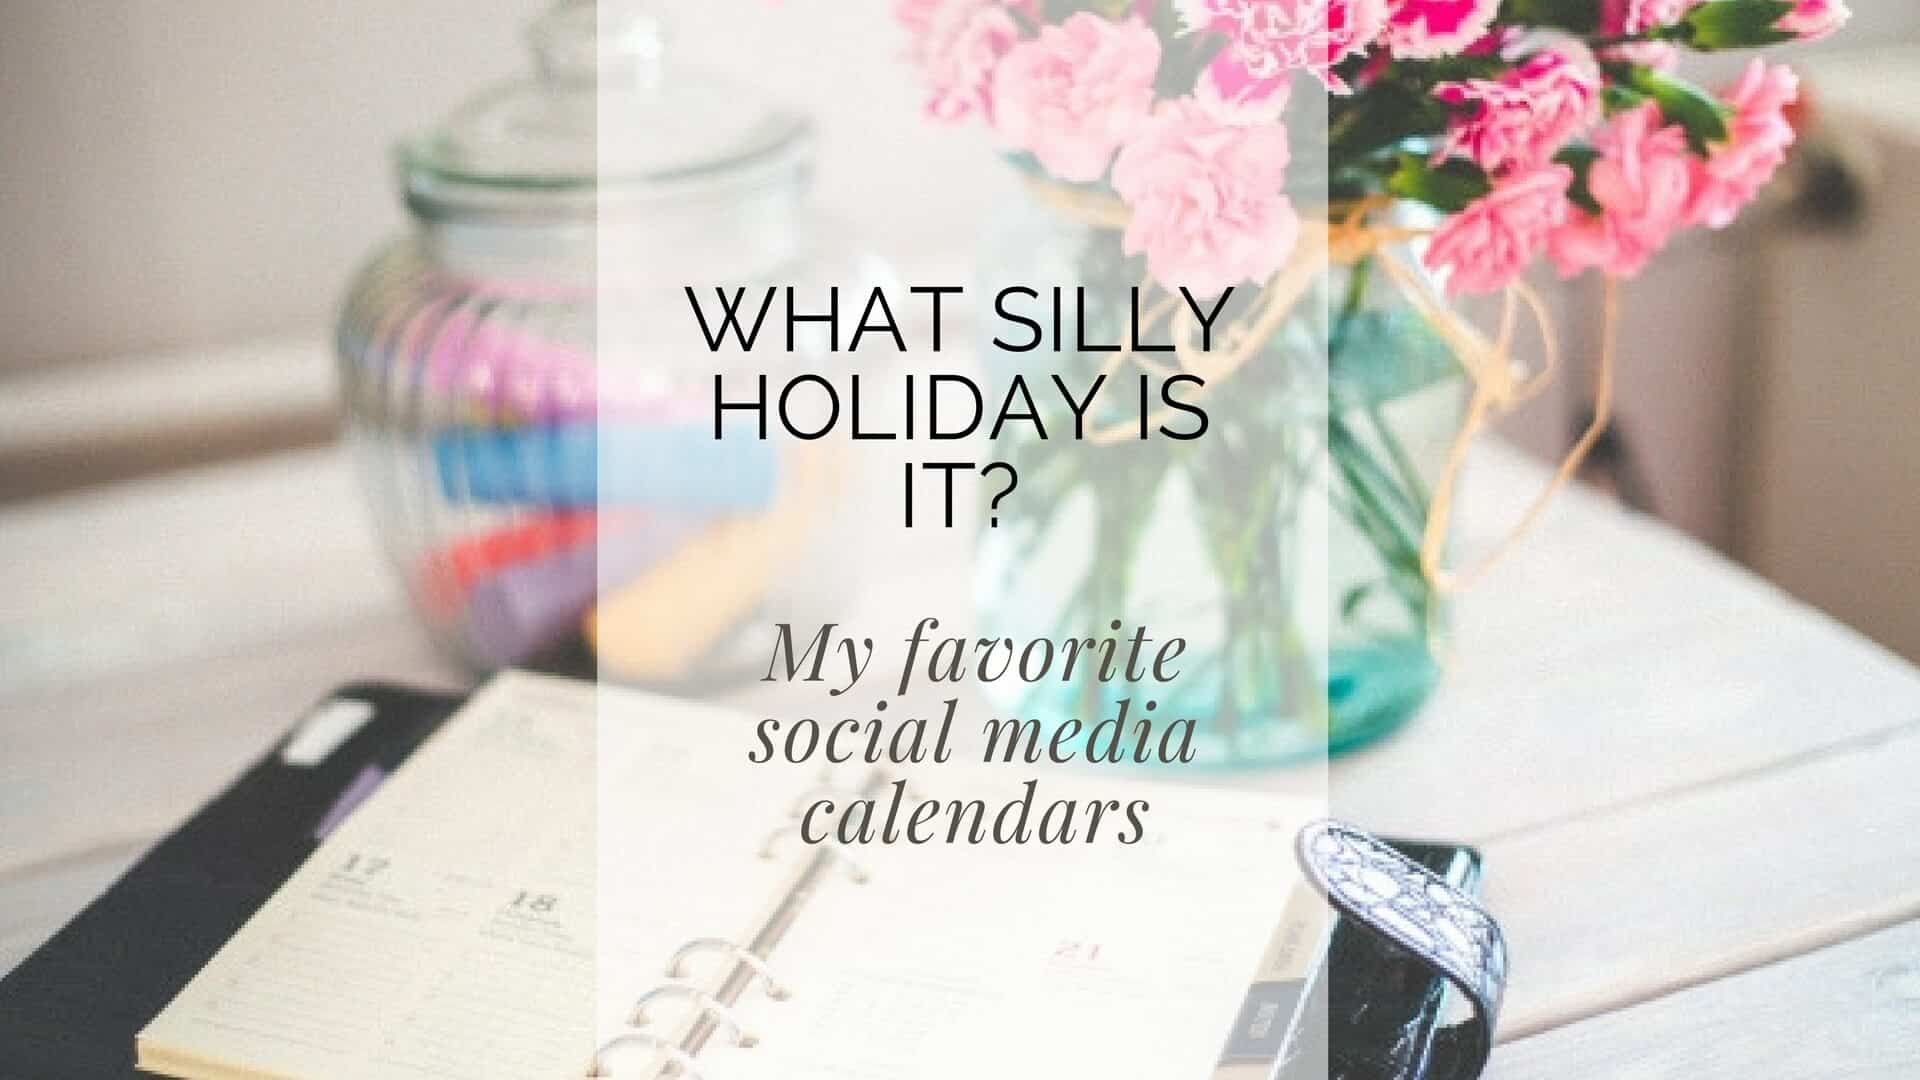 What Silly Holiday is it?